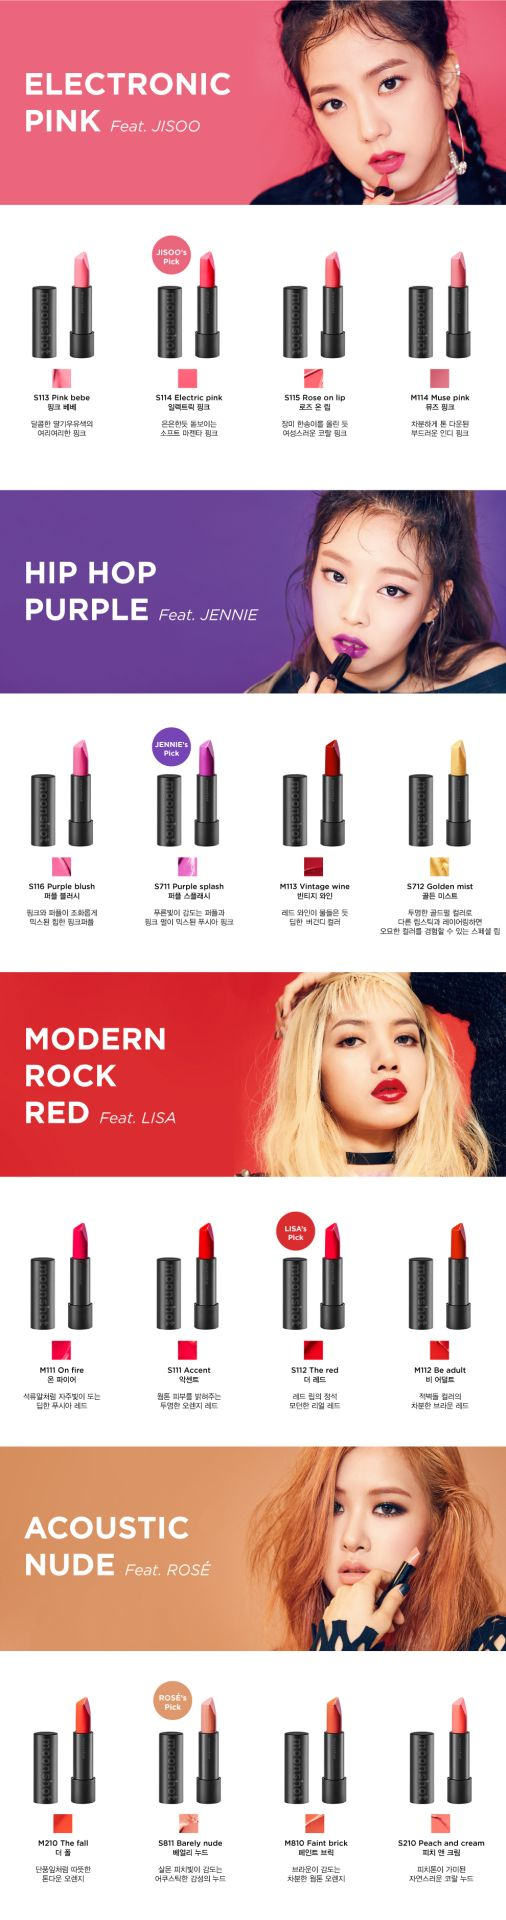 #BLACKPINK #블랙핑크 lipfeat - Korean cosmetic brand by YG entertainment http://www.moonshot-cosmetics.com/lipfeat.html